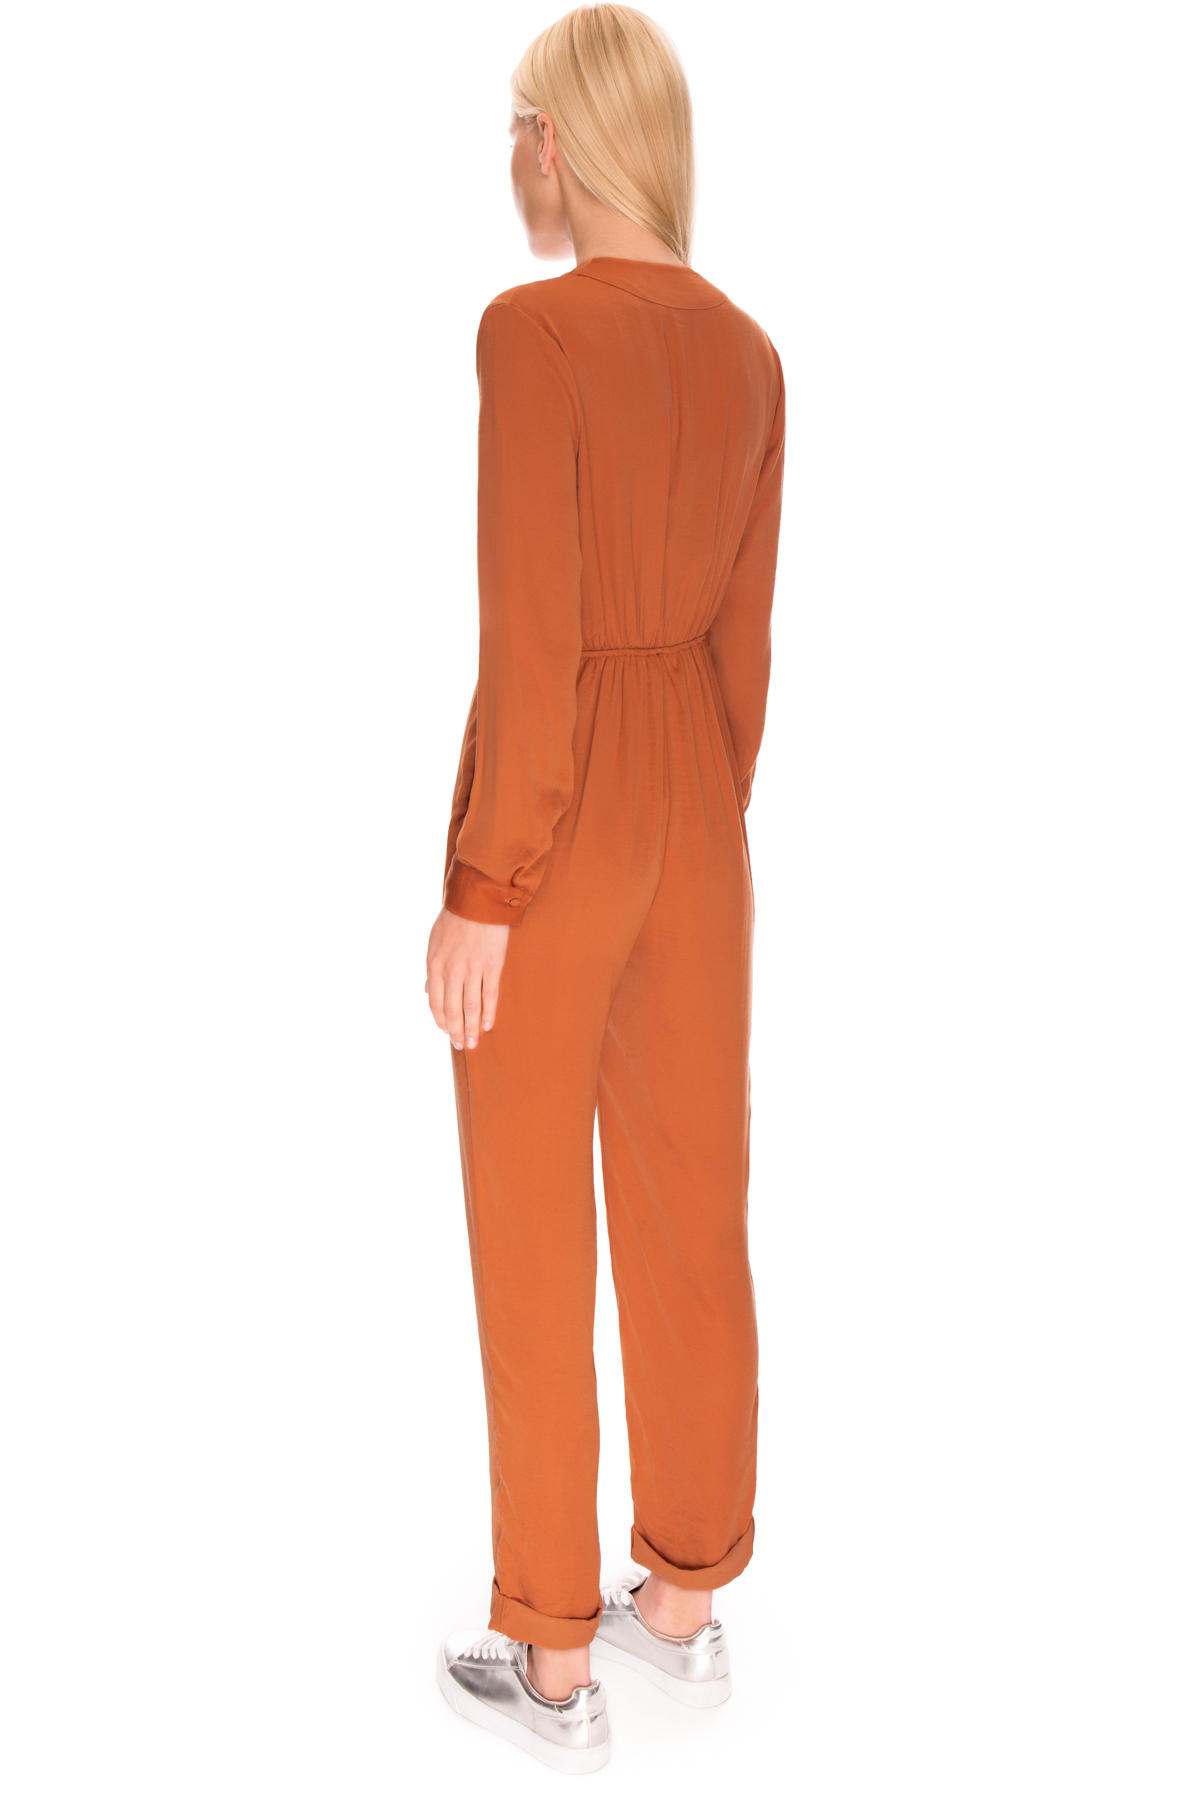 9fb5d8fe236 Lyst - The Fifth Label Stay Awhile Jumpsuit in Orange